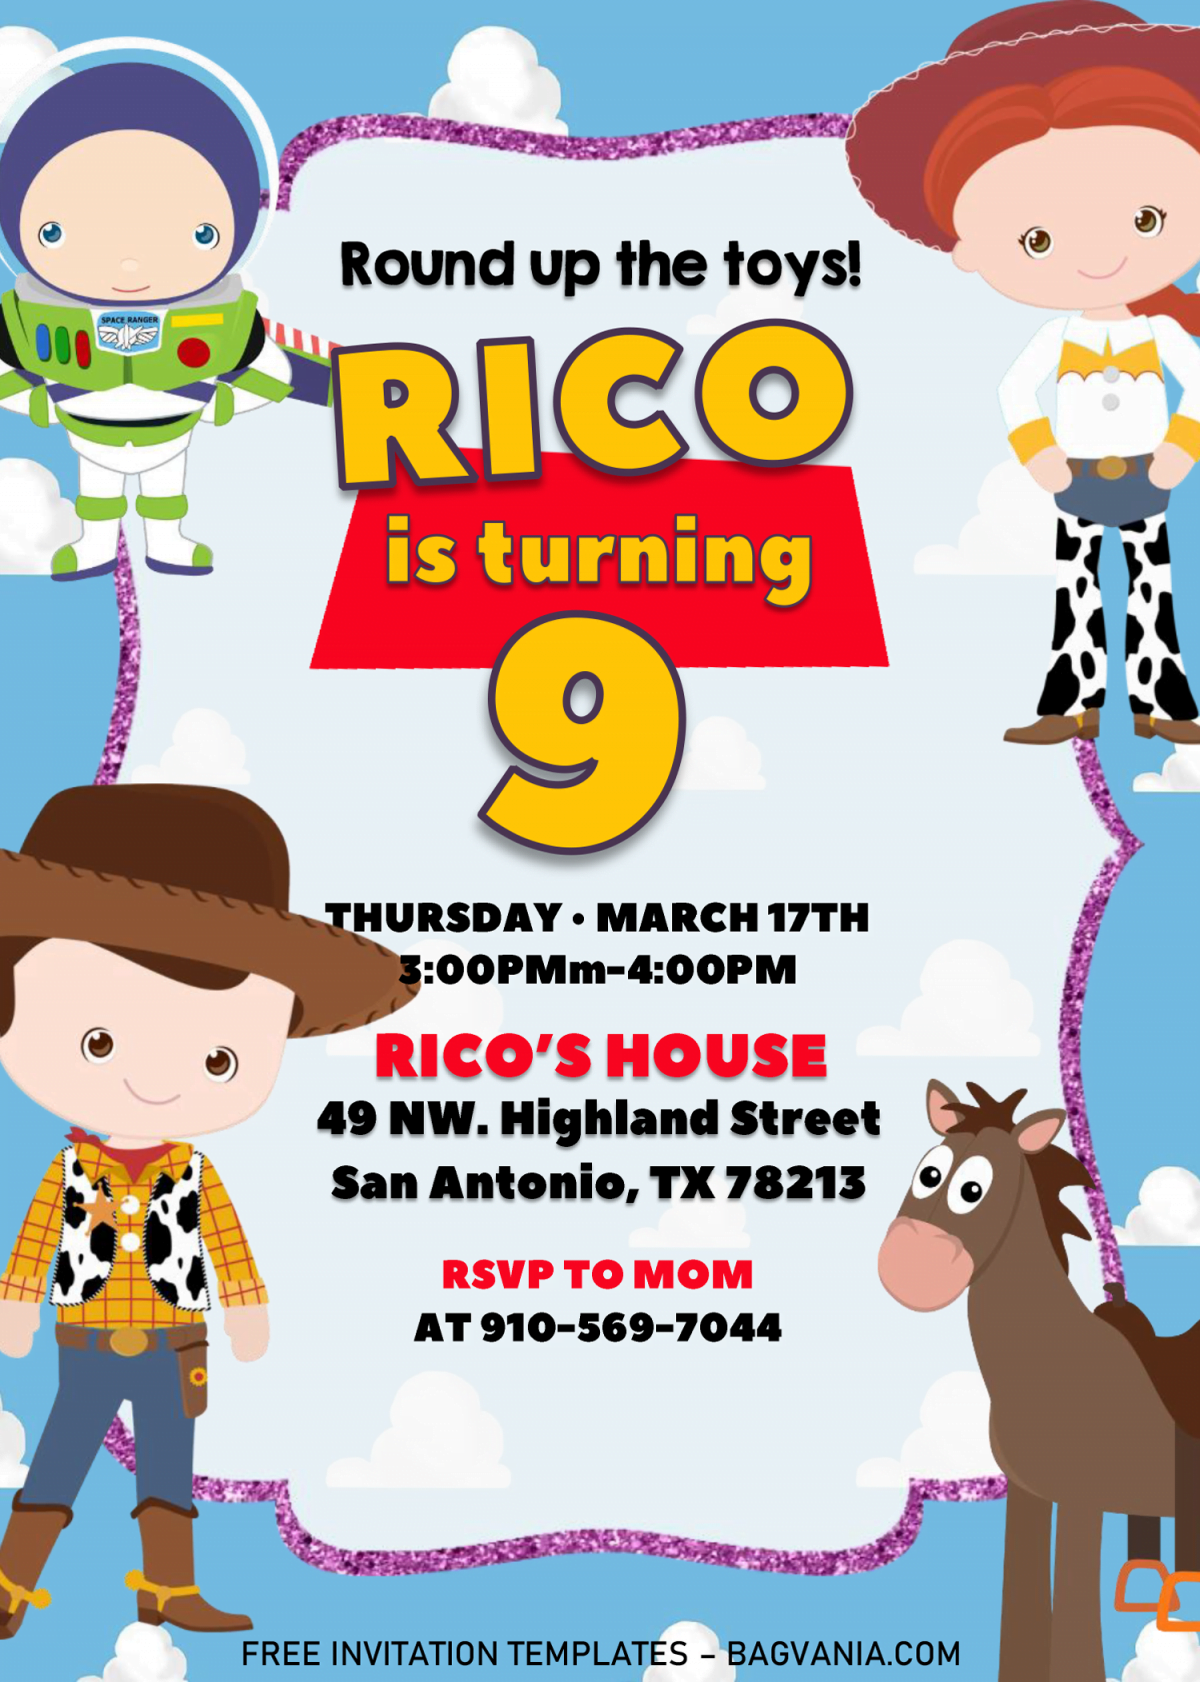 Toy Story Invitation Templates - Editable With MS Word and has portrait orientation